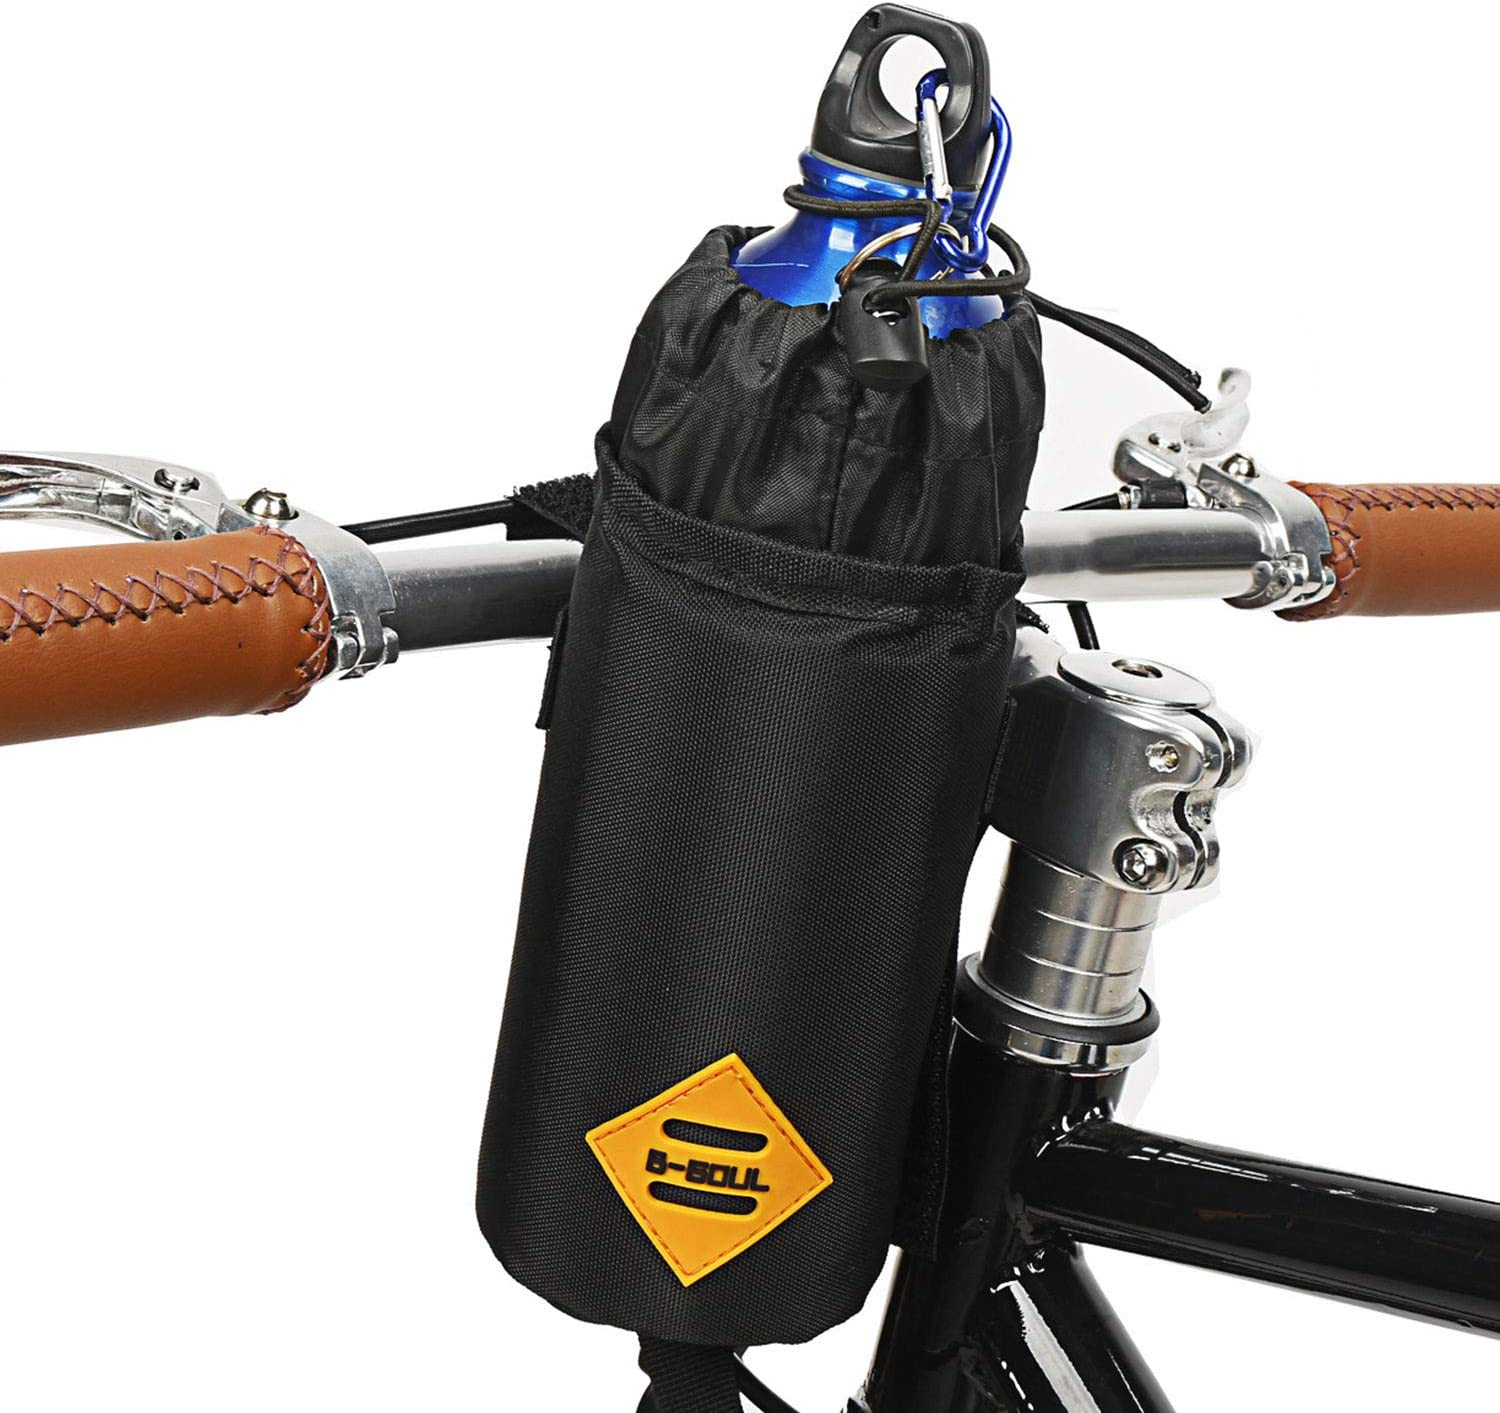 Suruid Bike Water Bottle Holder Insulated Bike Carrier Bag